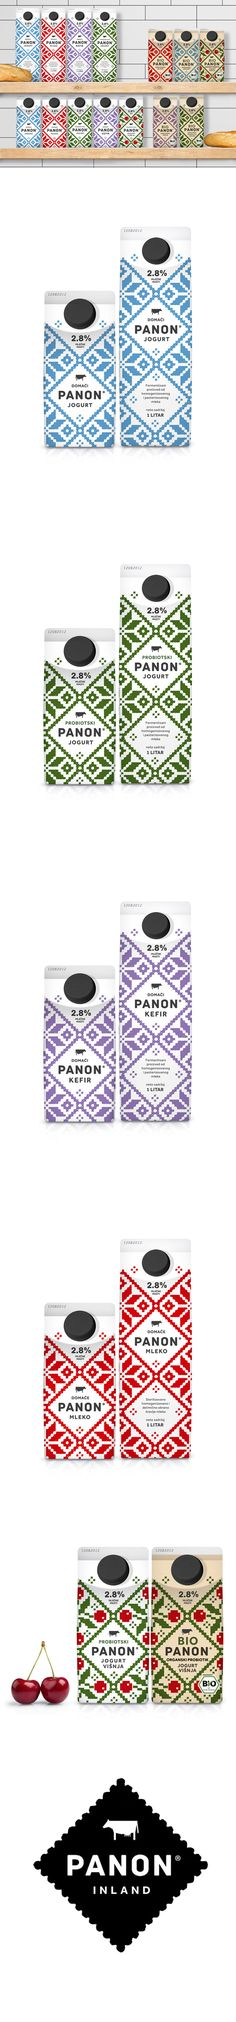 PANON Dairy *** Stunning new packaging from Peter Gregson Studio for PANON and BIOPANON yogurt and kefir brands.